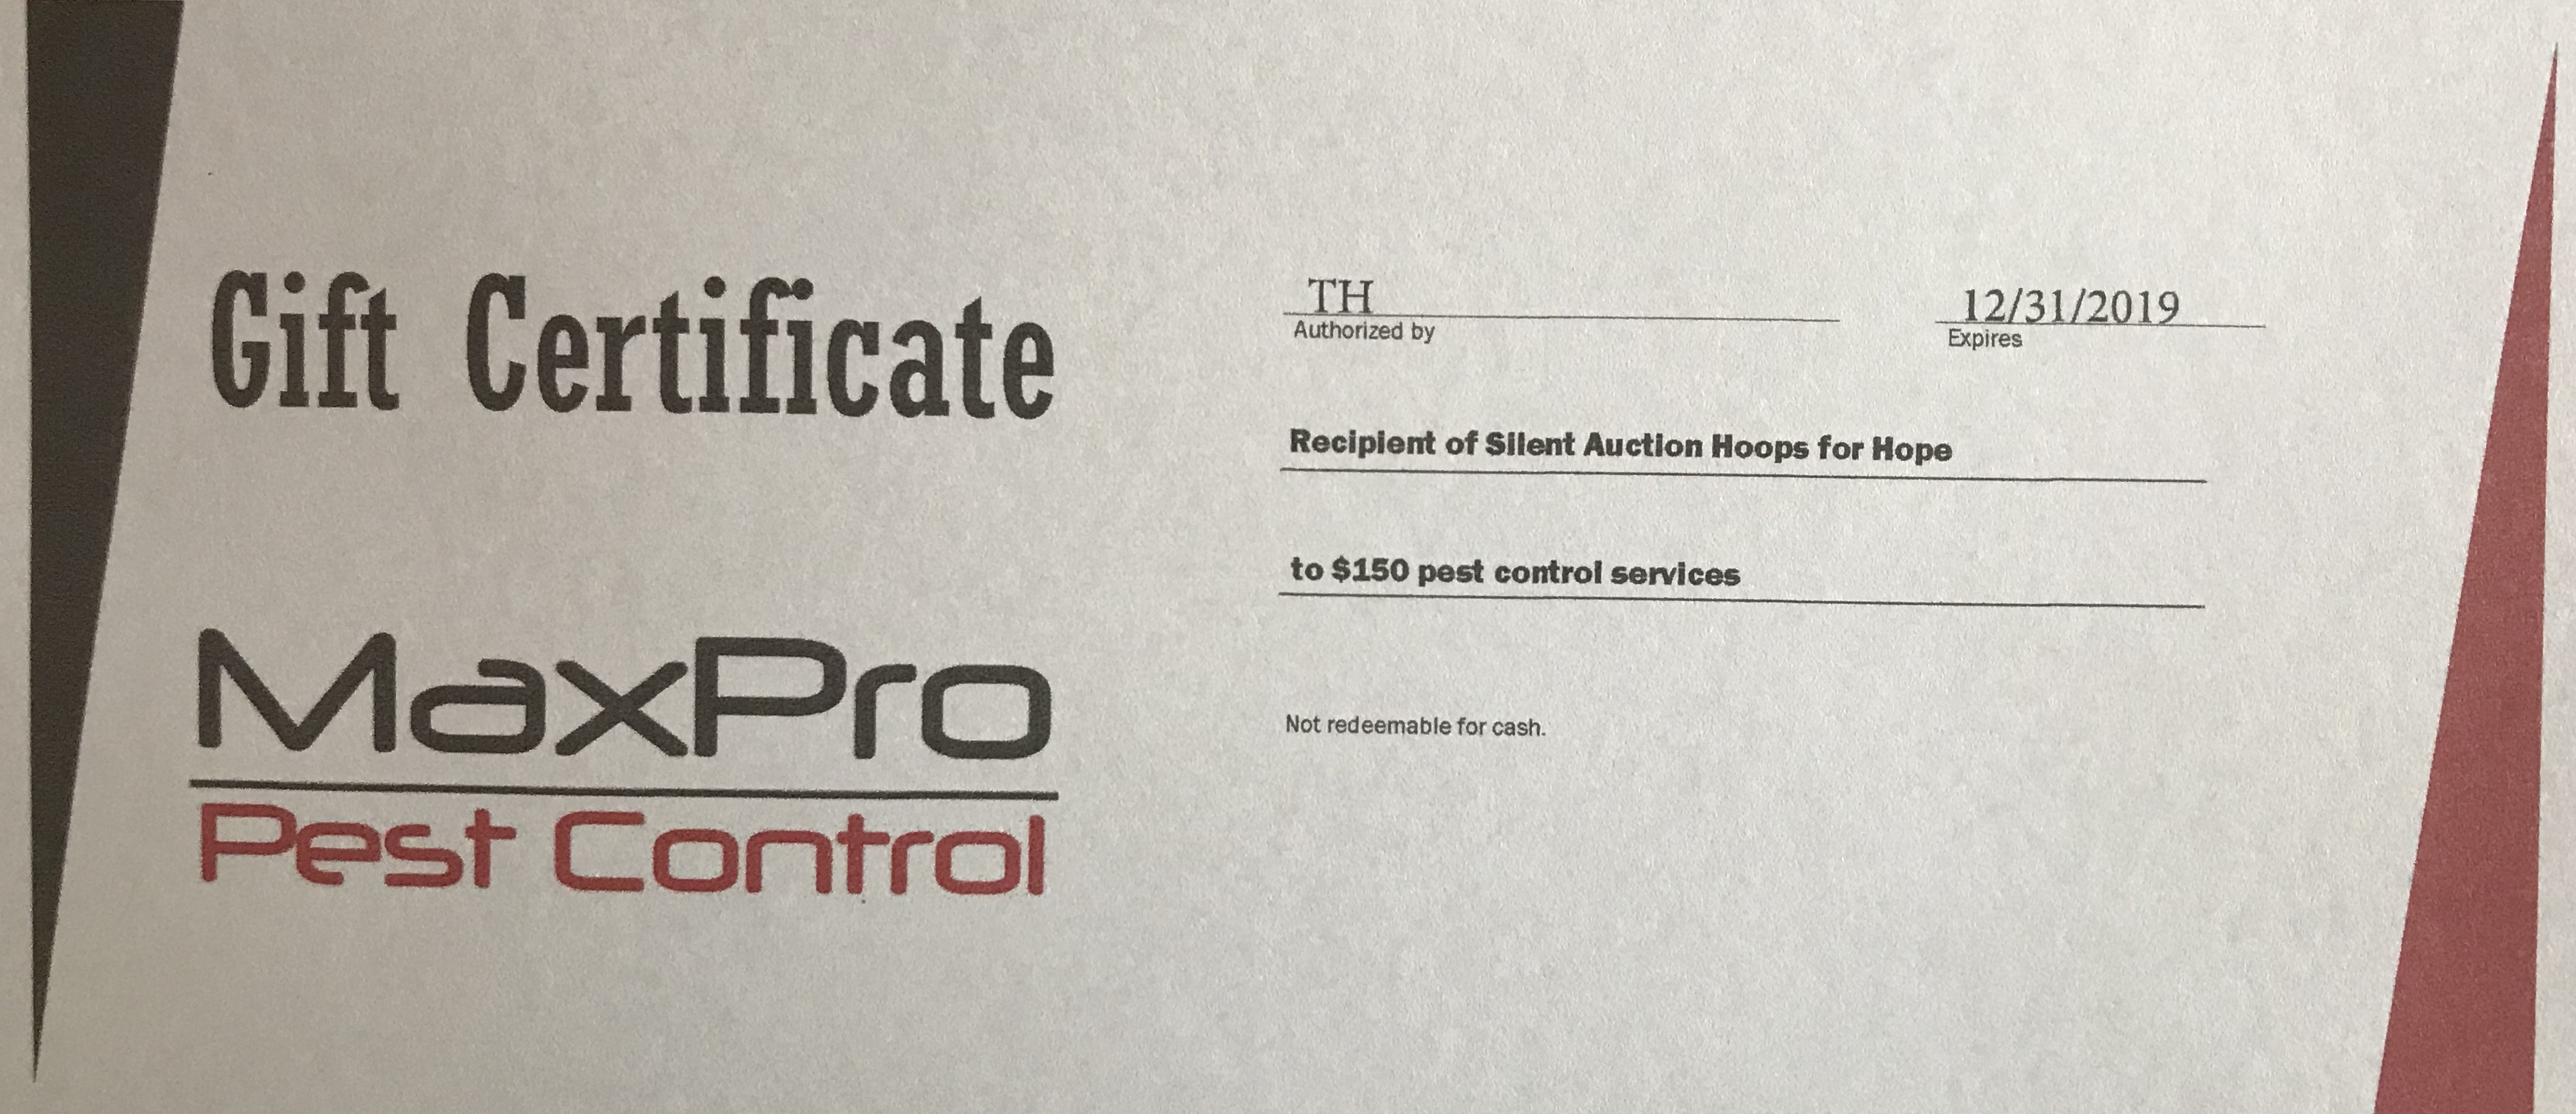 MaxPro Pest Control Gift Certificate